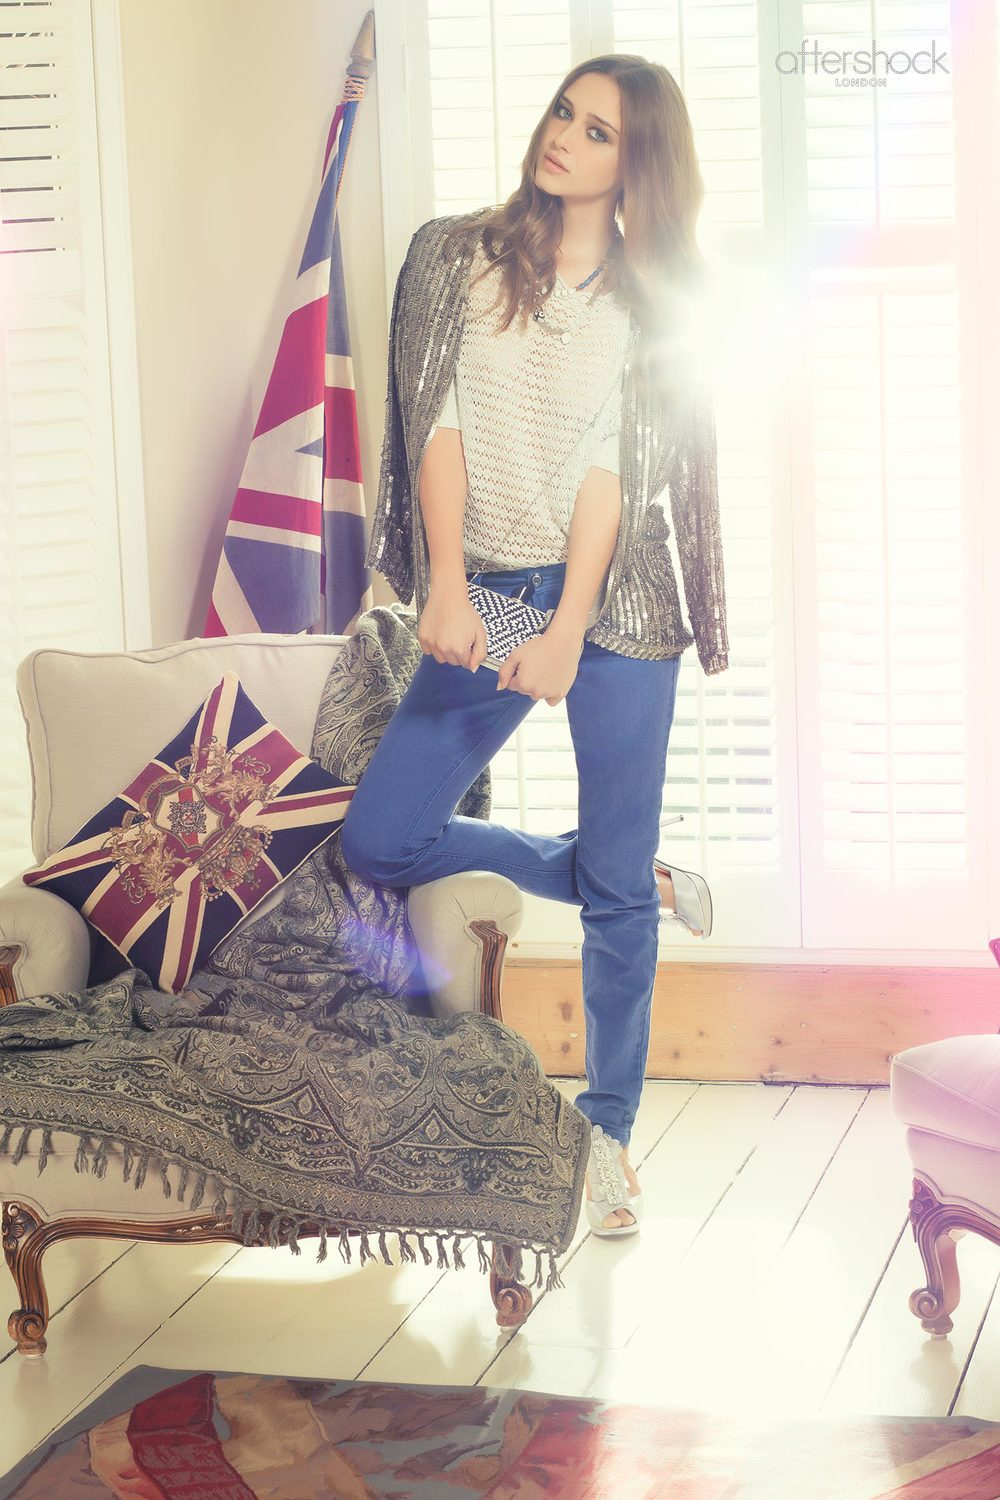 Aftershock London Campaign